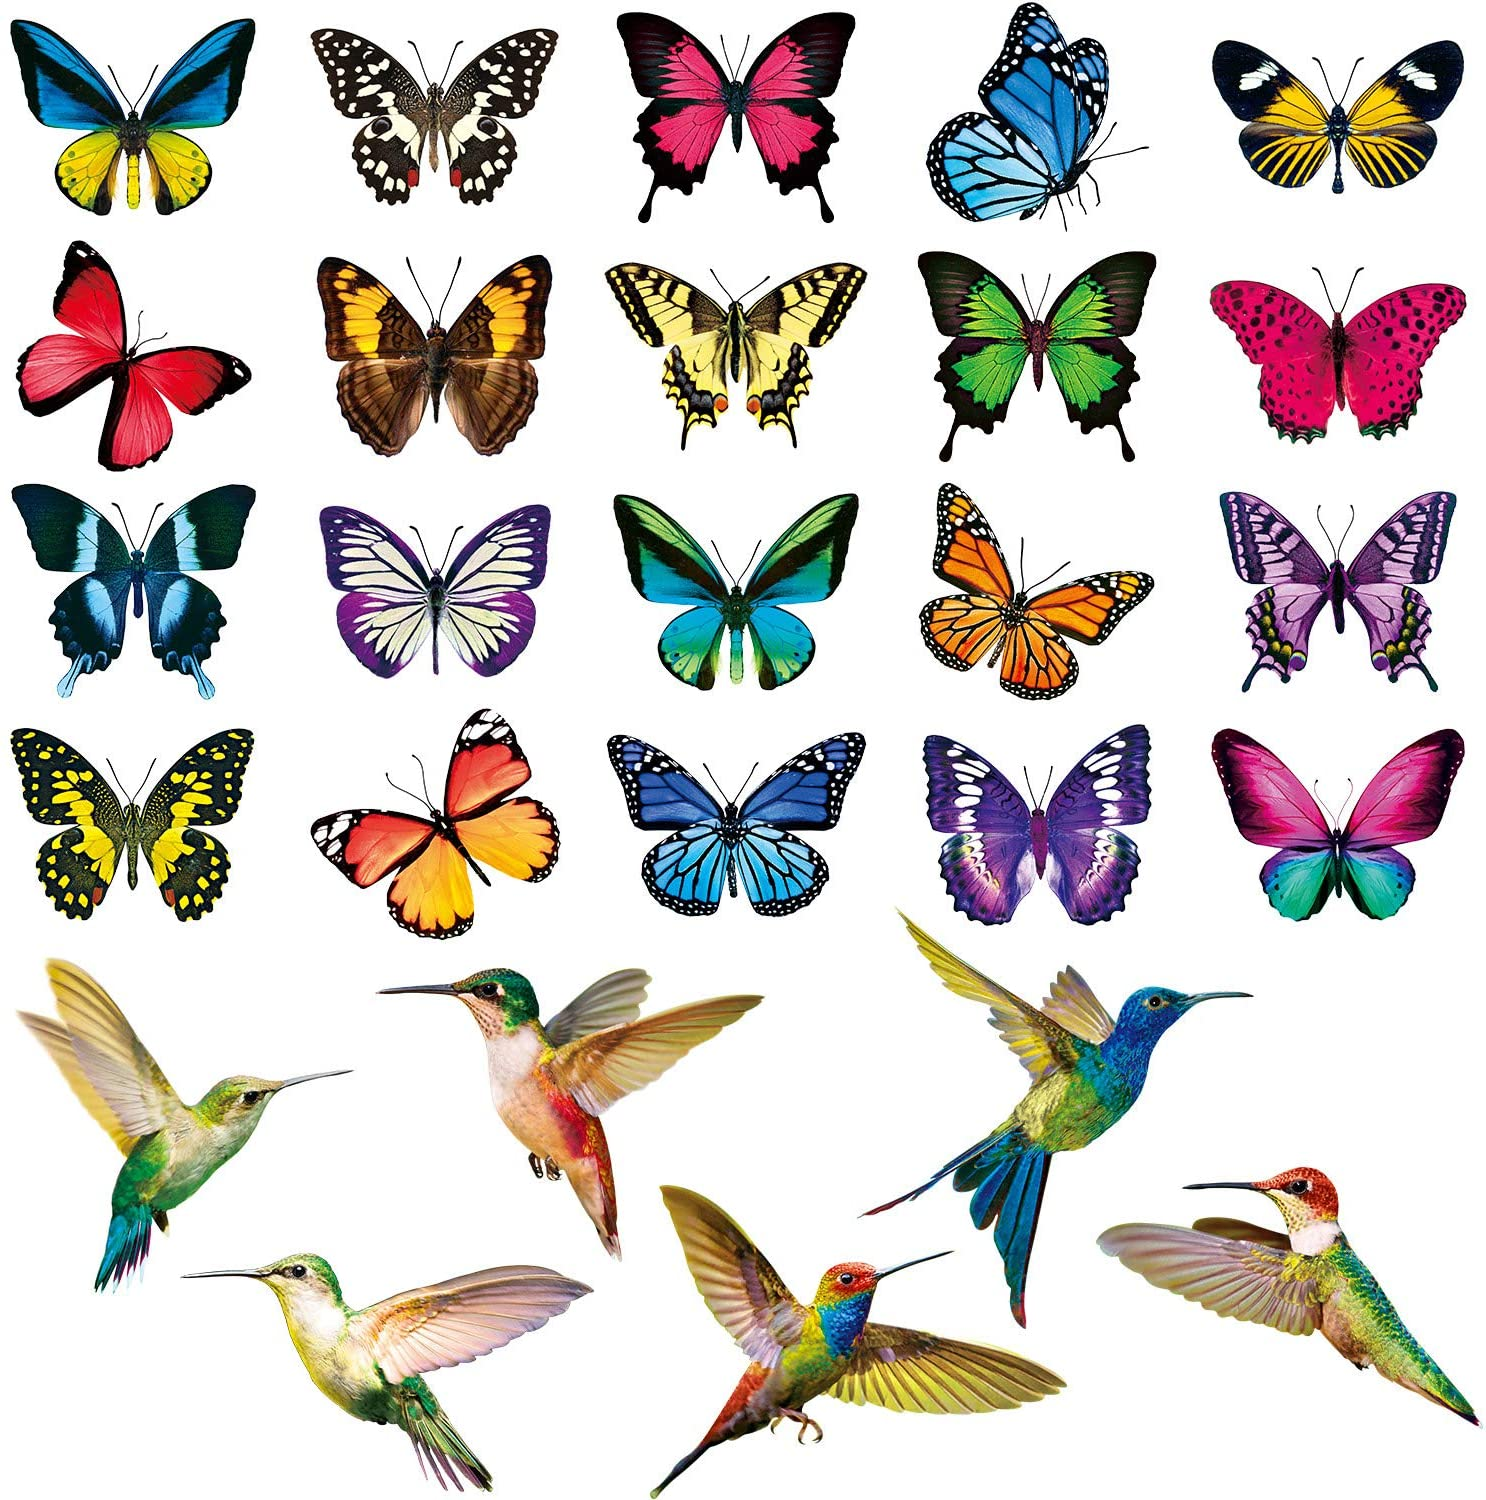 26 Pieces Hummingbird Butterfly Window Clings Anti-Collision Window Decals Non Adhesive Vinyl Window Clings Stickers for Preventing Bird Strikes on Window Glass or Home Decoration